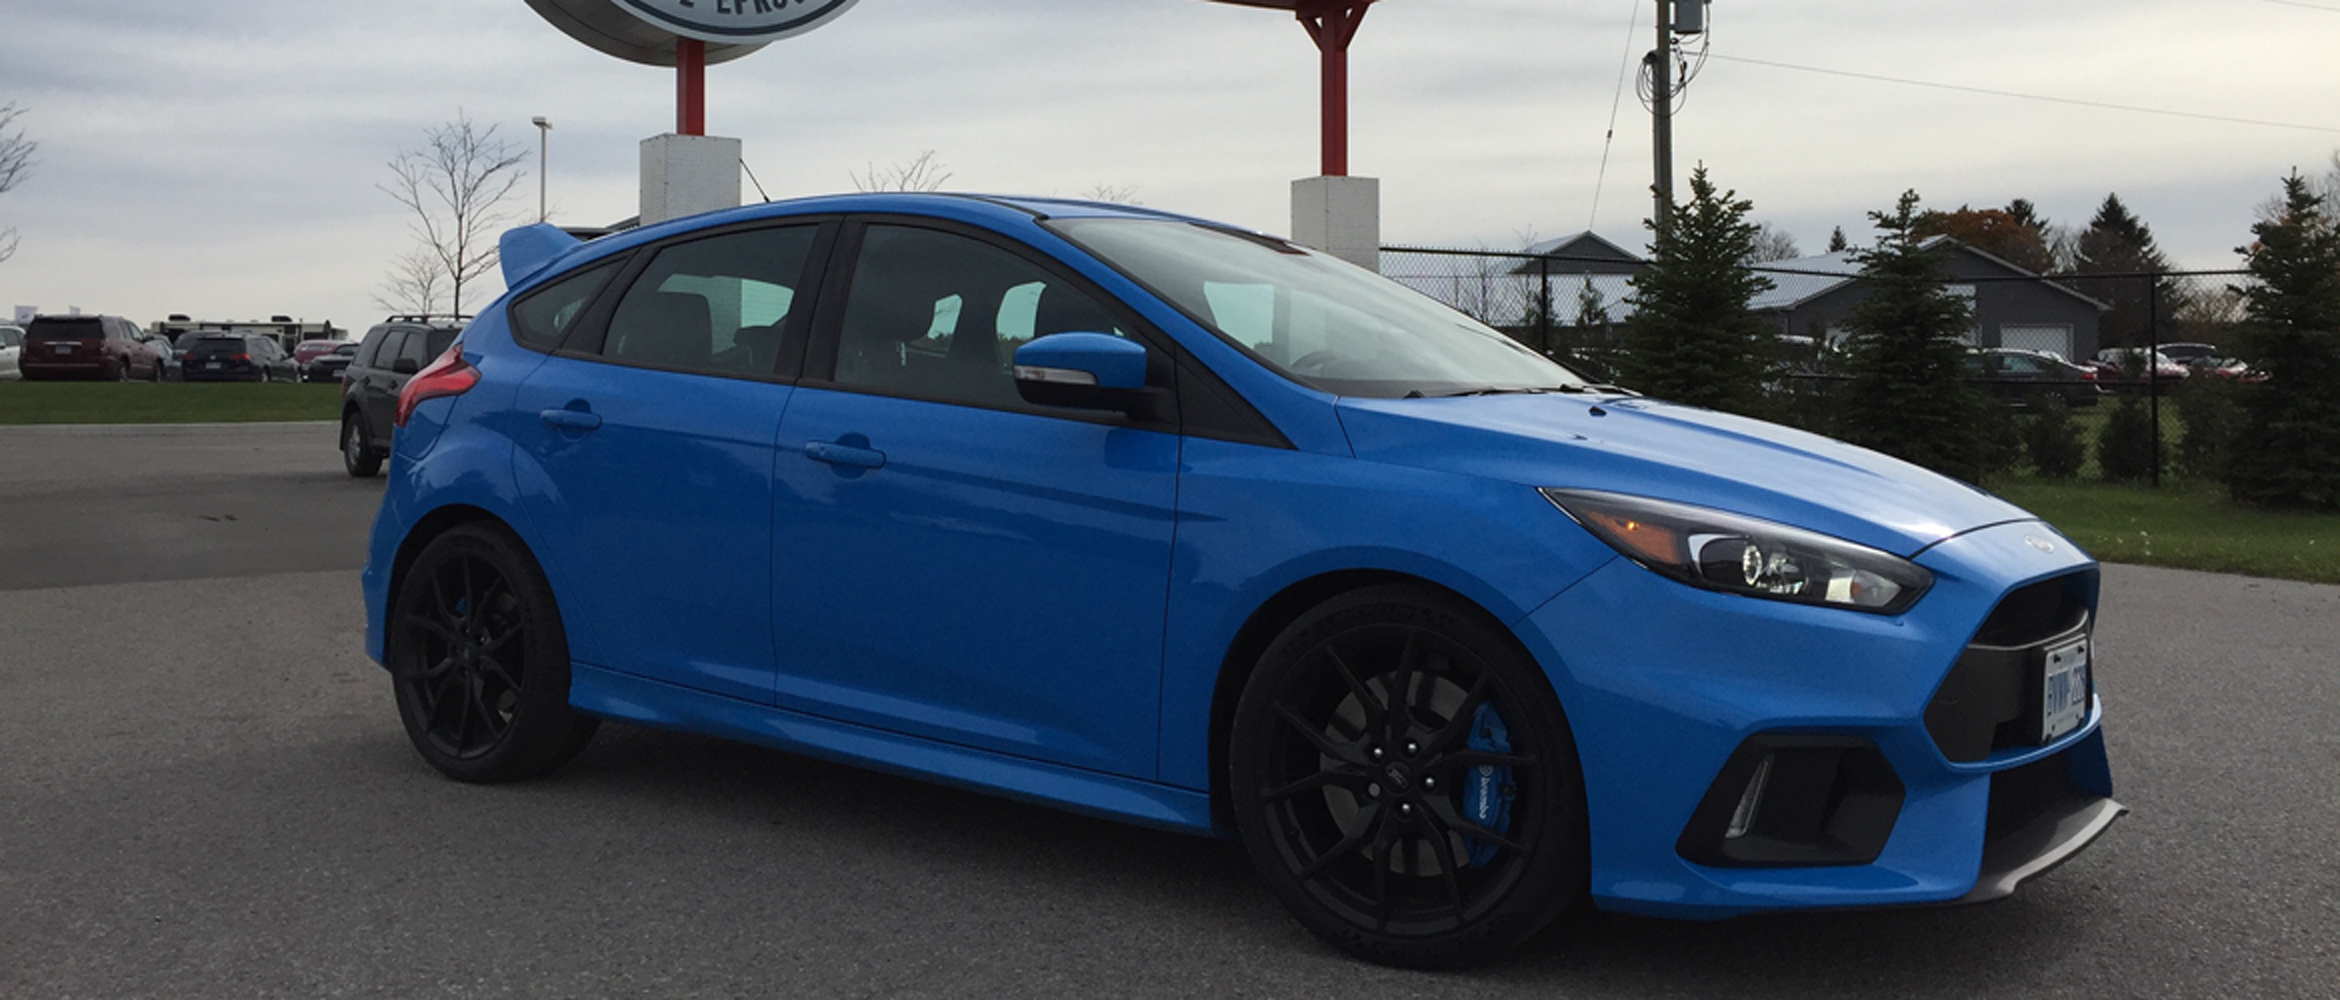 ford focus rs testfest